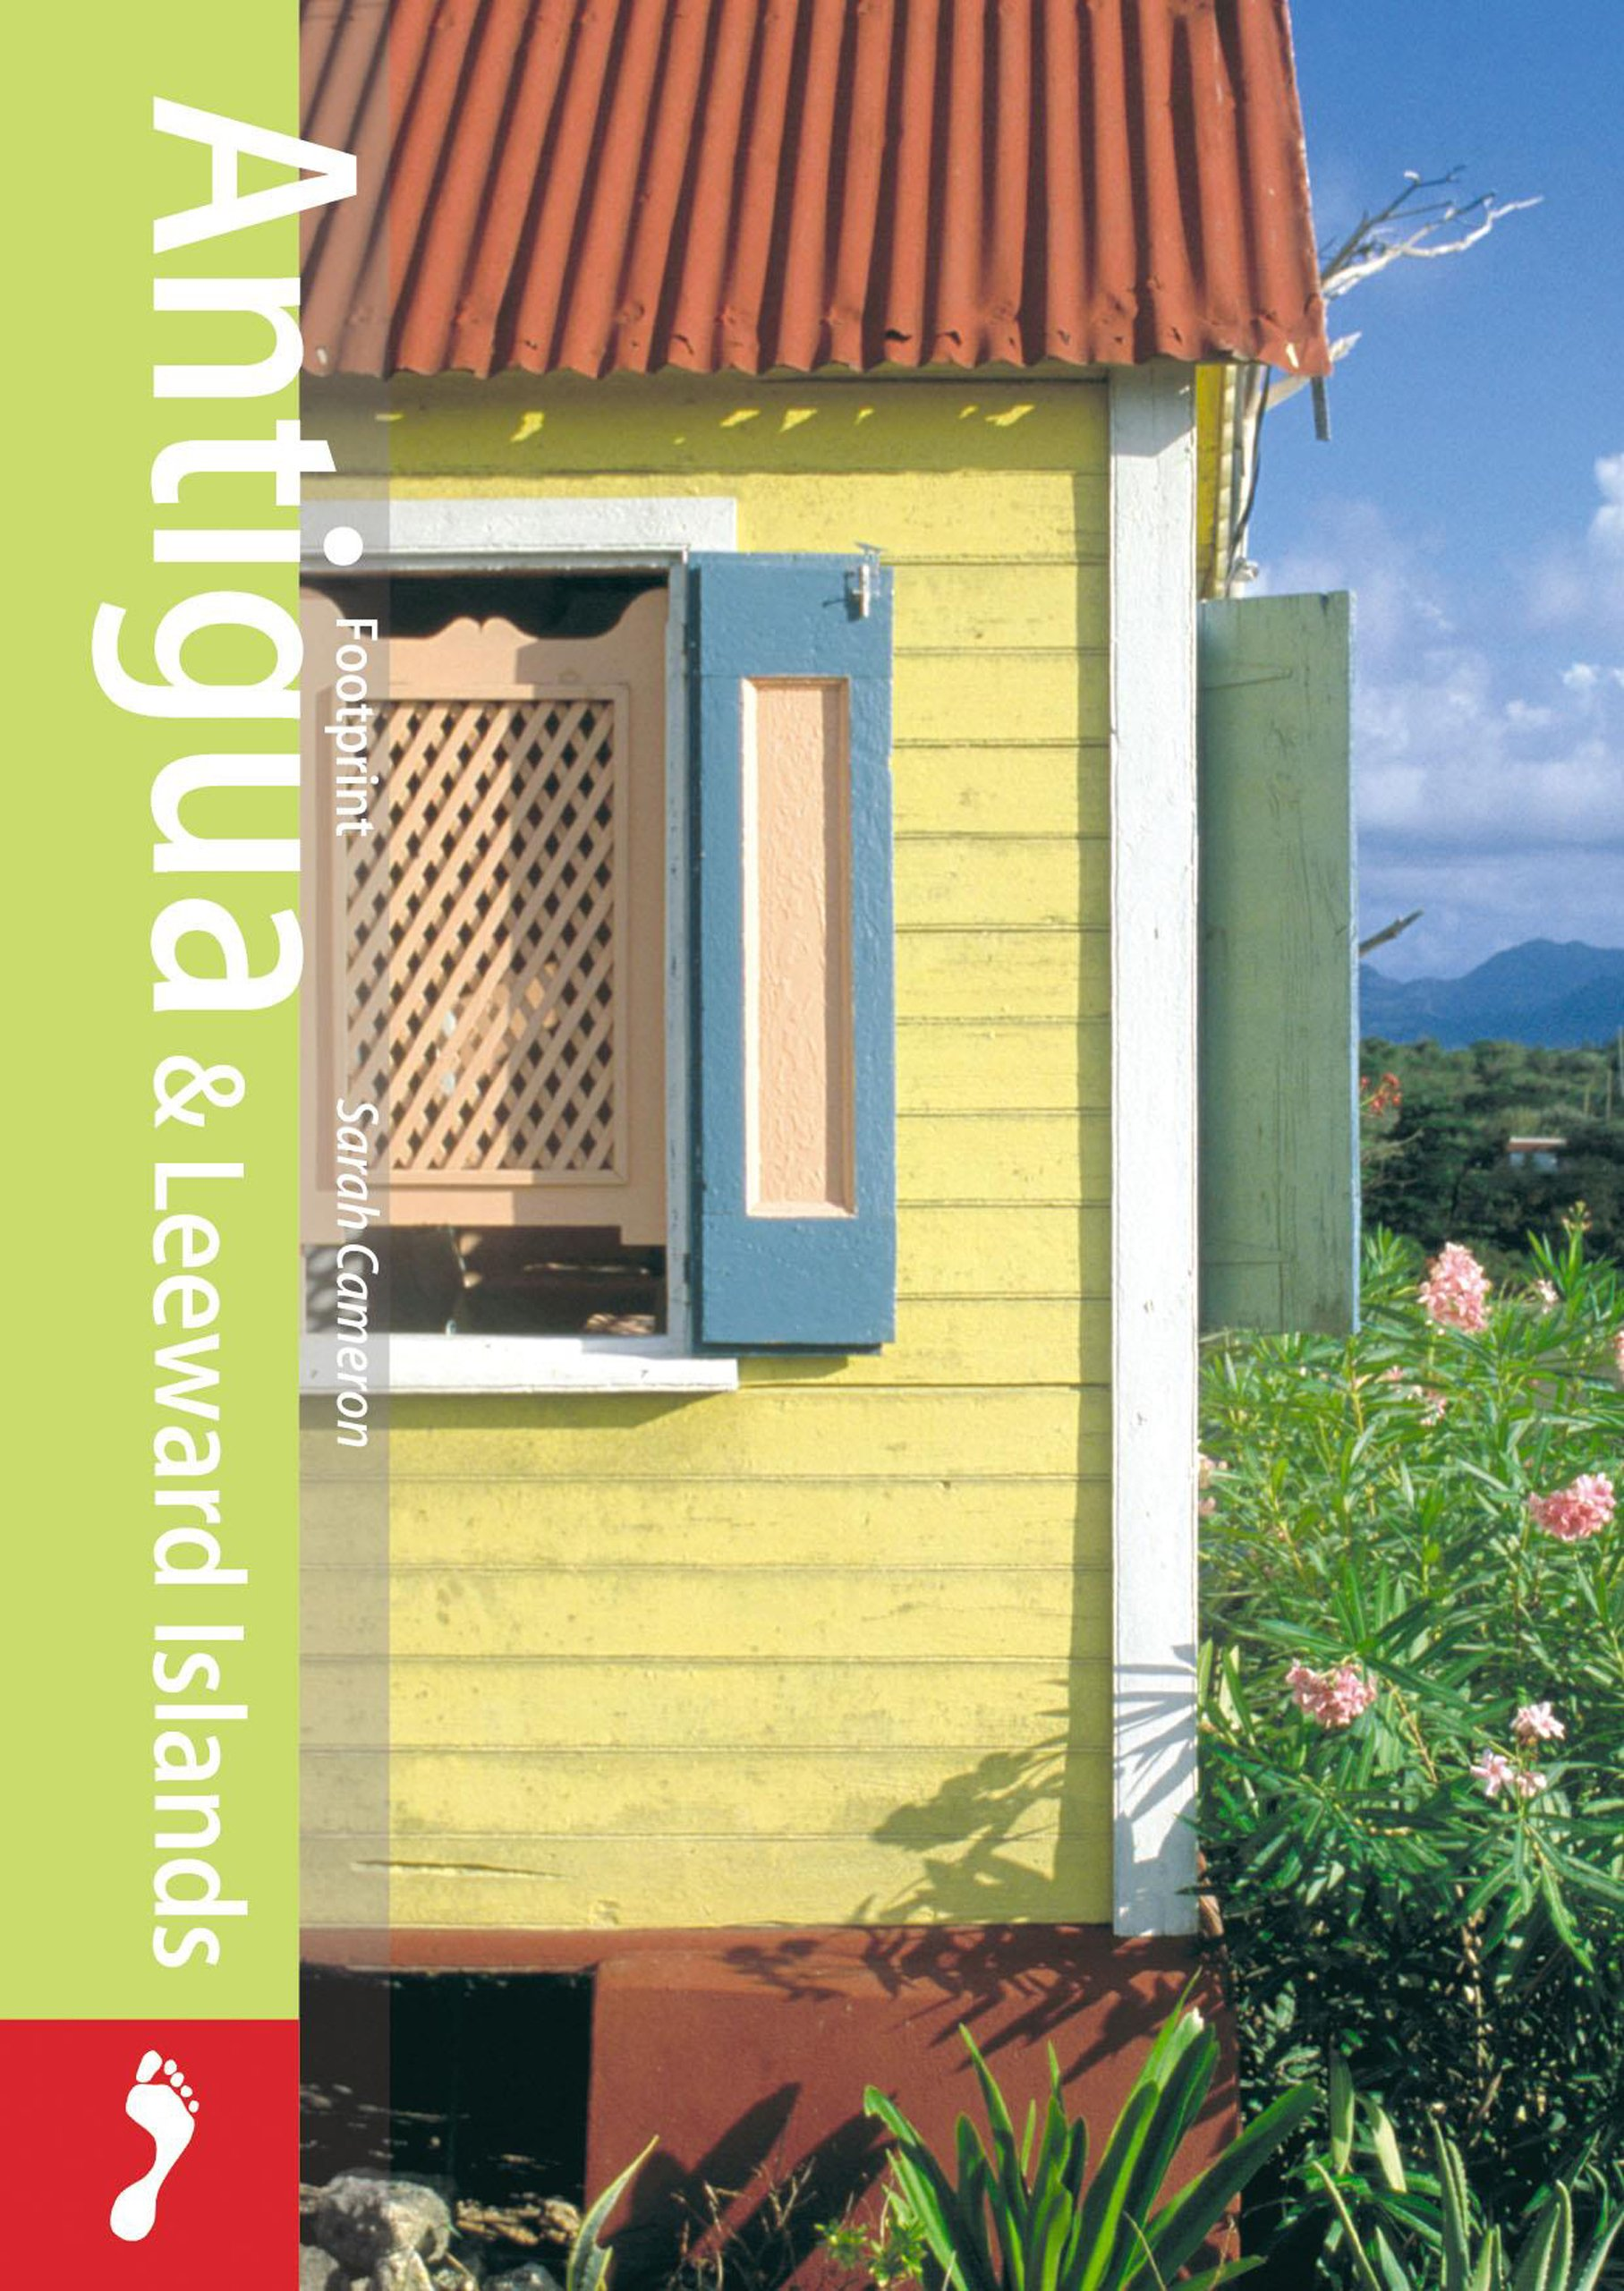 Antigua & Leeward Islands 1 pocket